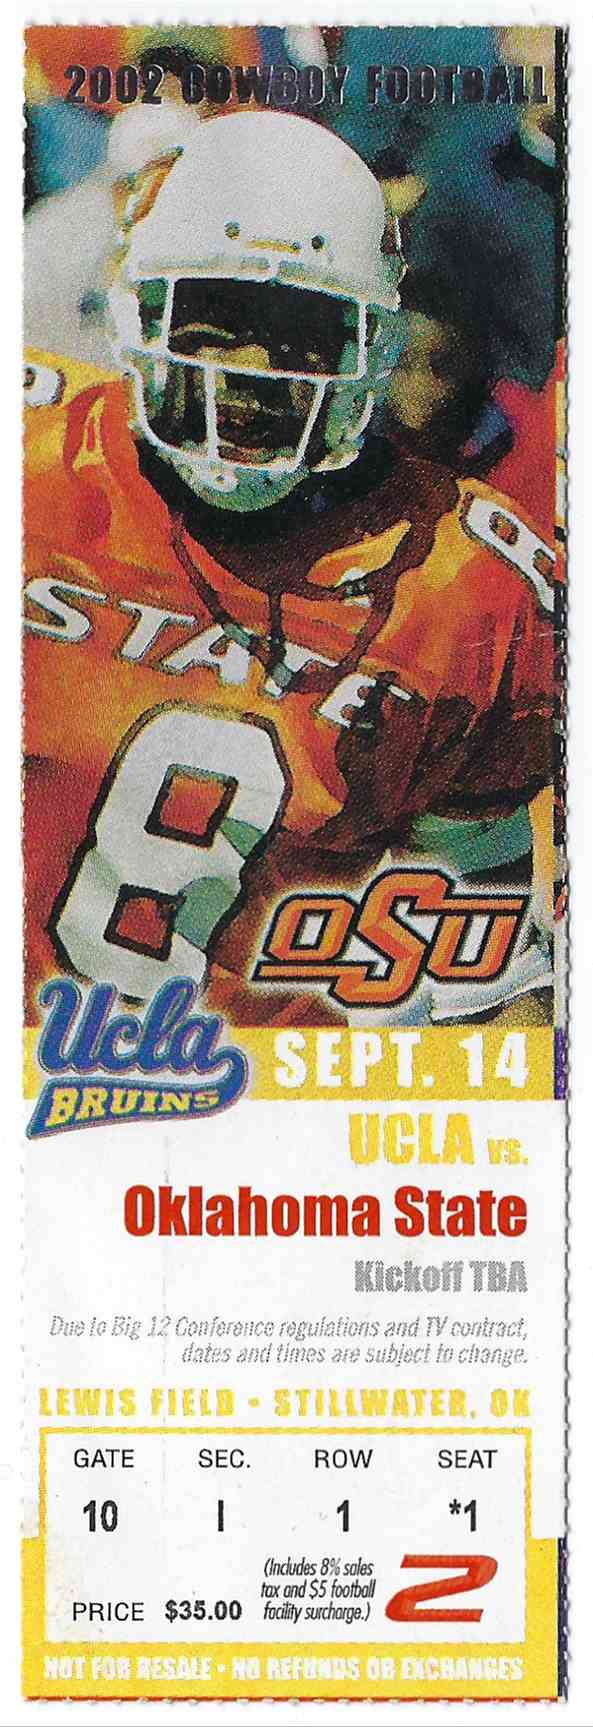 2002 College Football Ticket Stub Ucla Vs Oklahoma State card front image